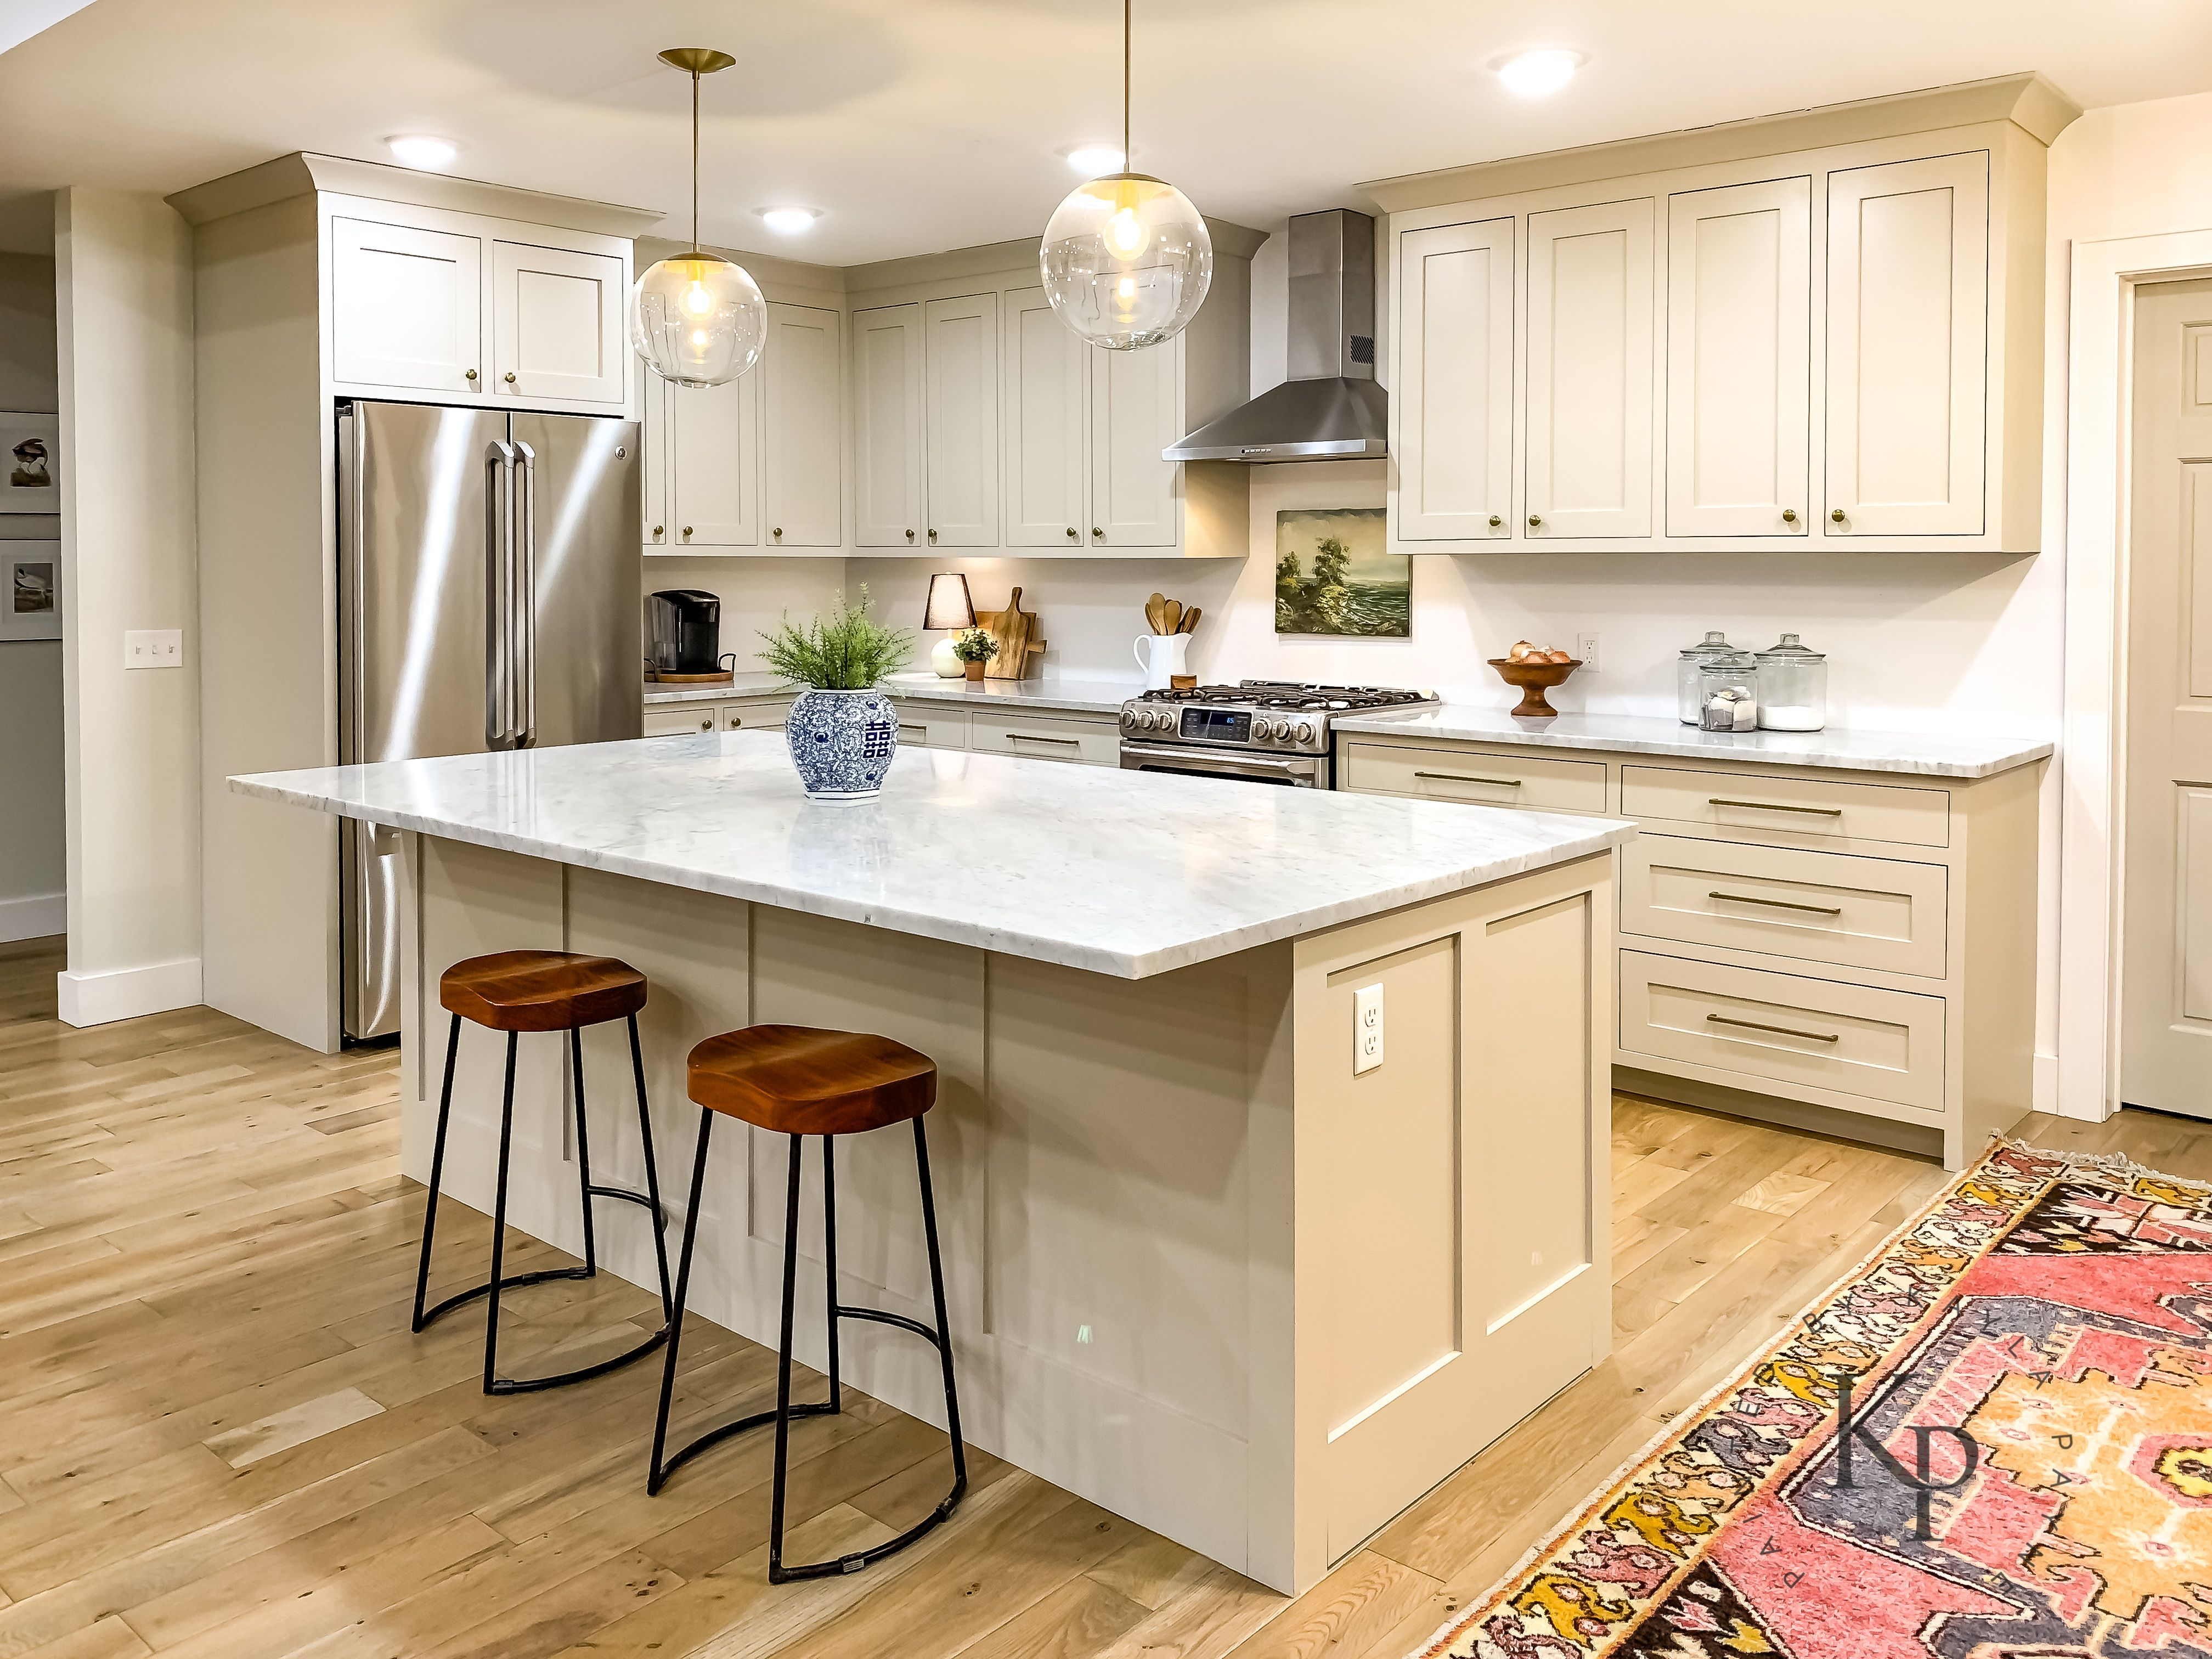 Revere Pewter Kitchen Cabinets Painted By Kayla Payne Kitchencabinetsreviews Revere Pewter Kitchen New Kitchen Cabinets Kitchen Remodel